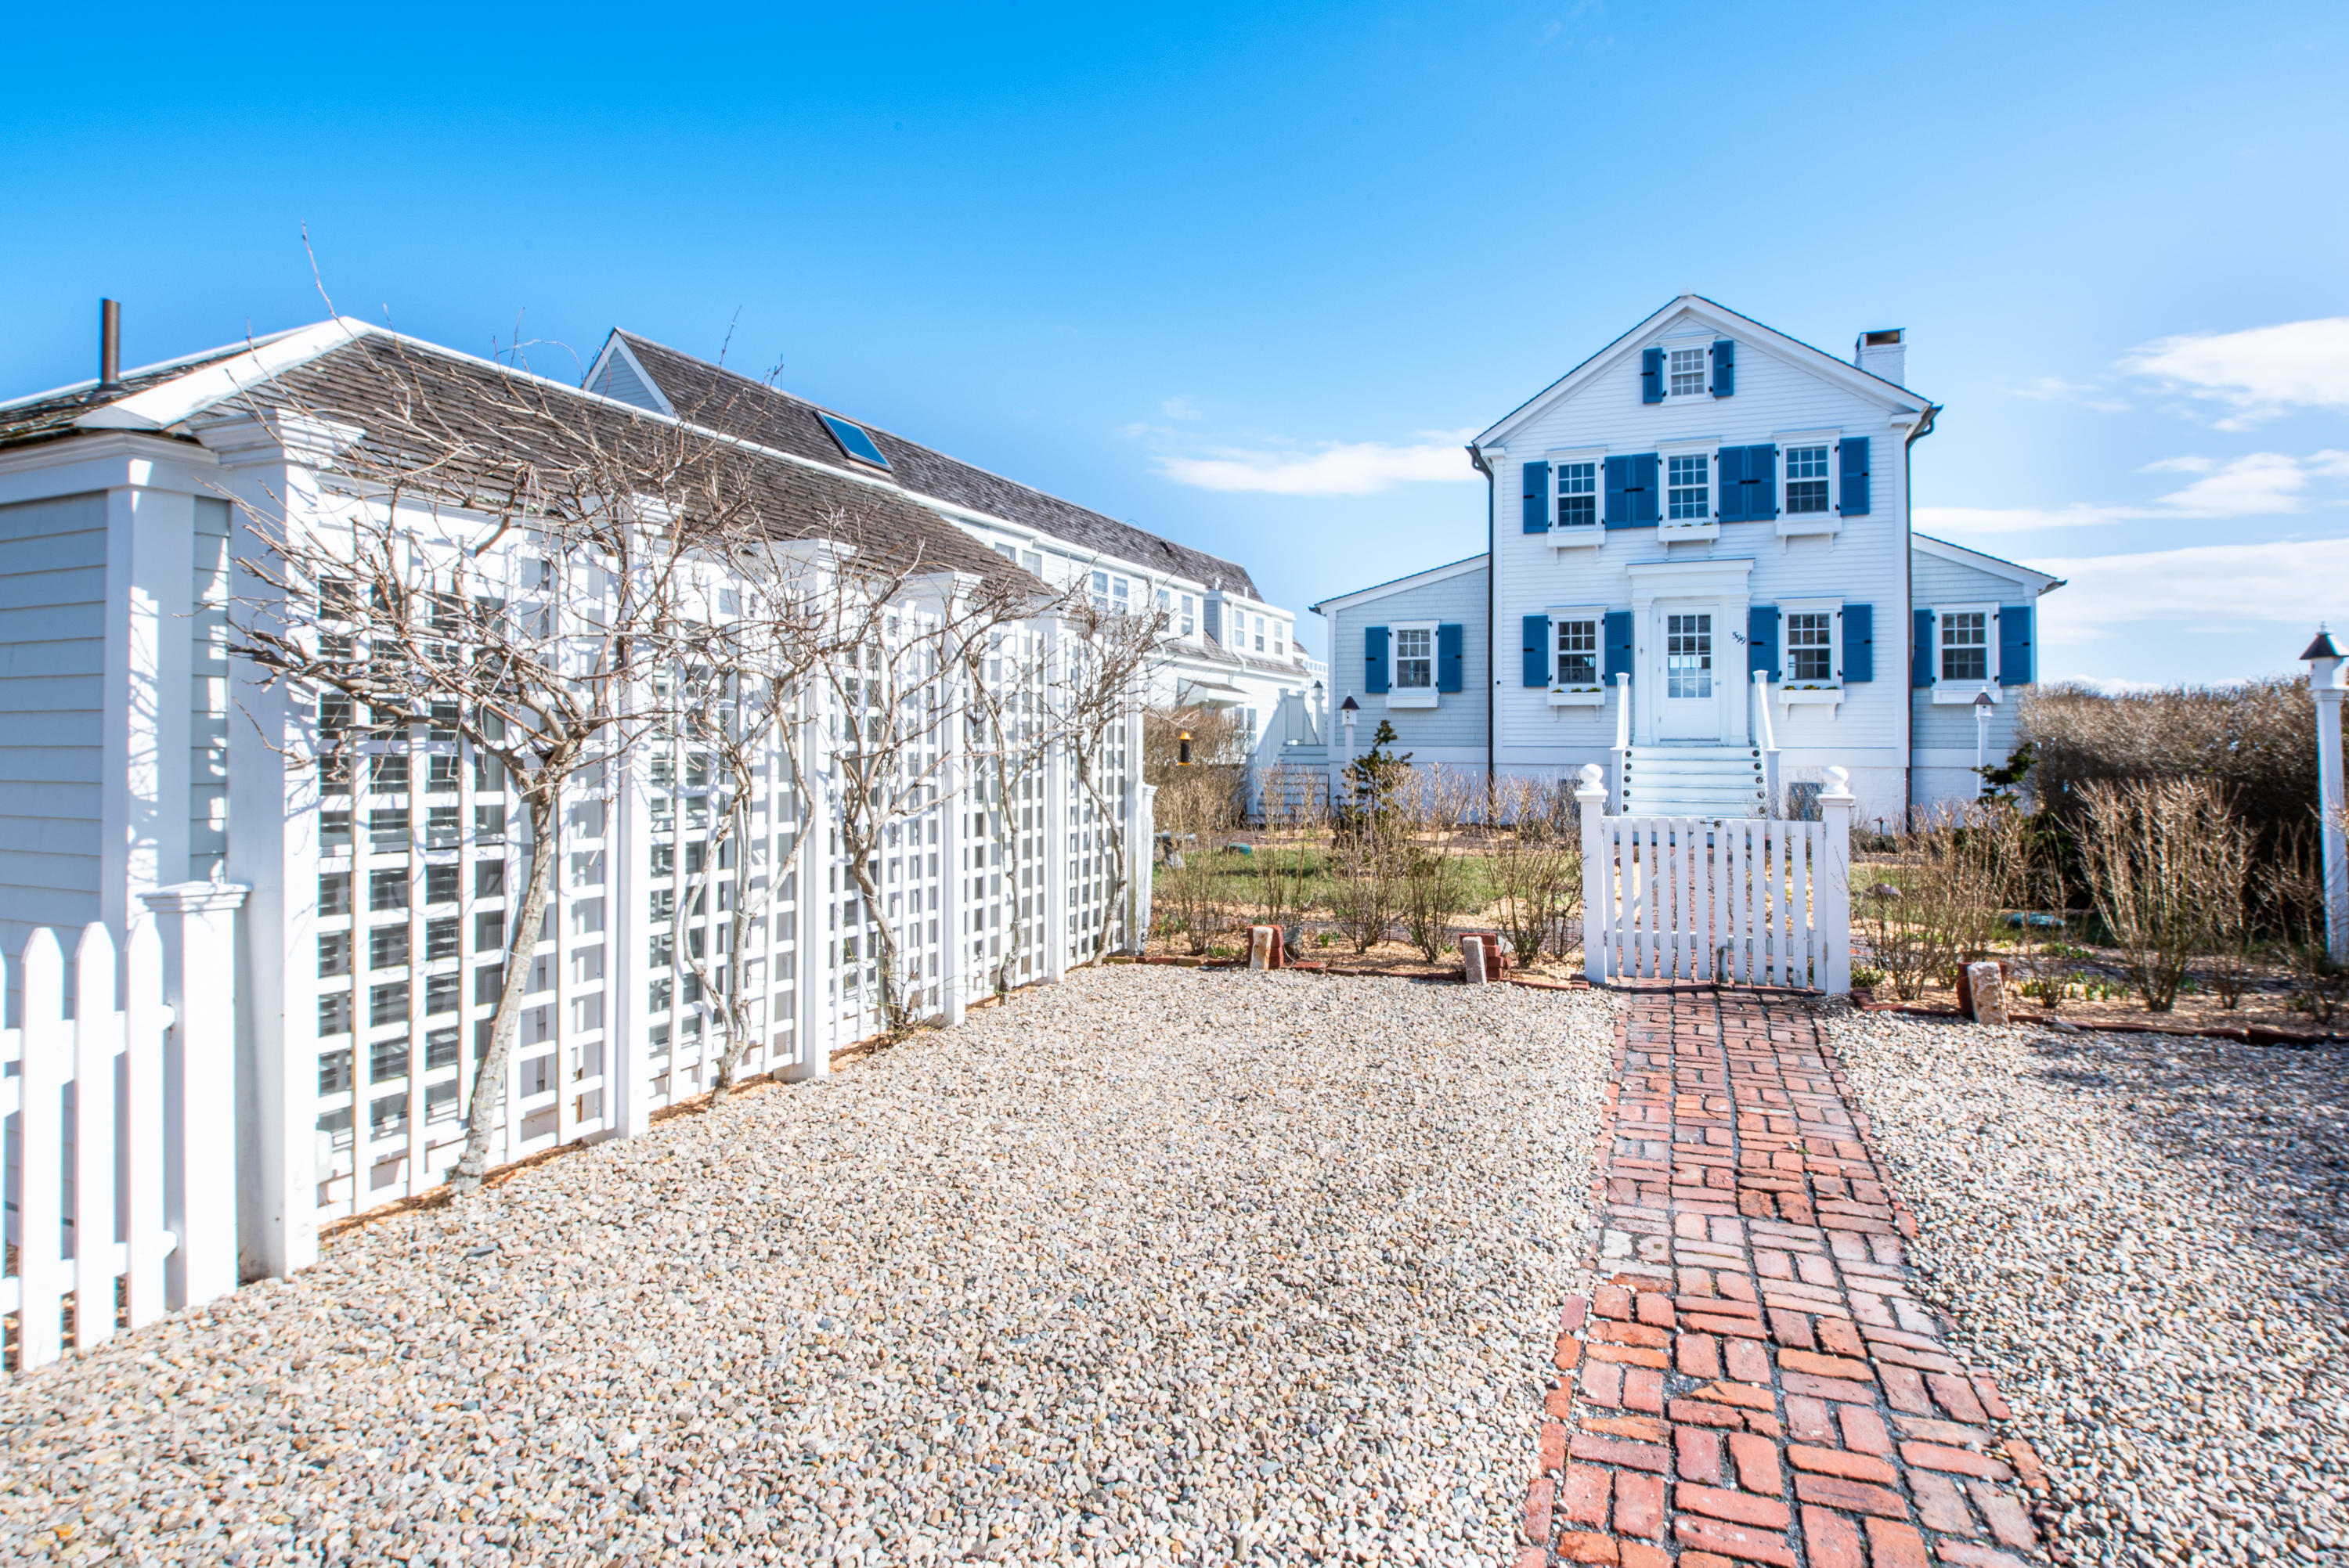 599 Commercial Street, Provincetown MA, 02657 details